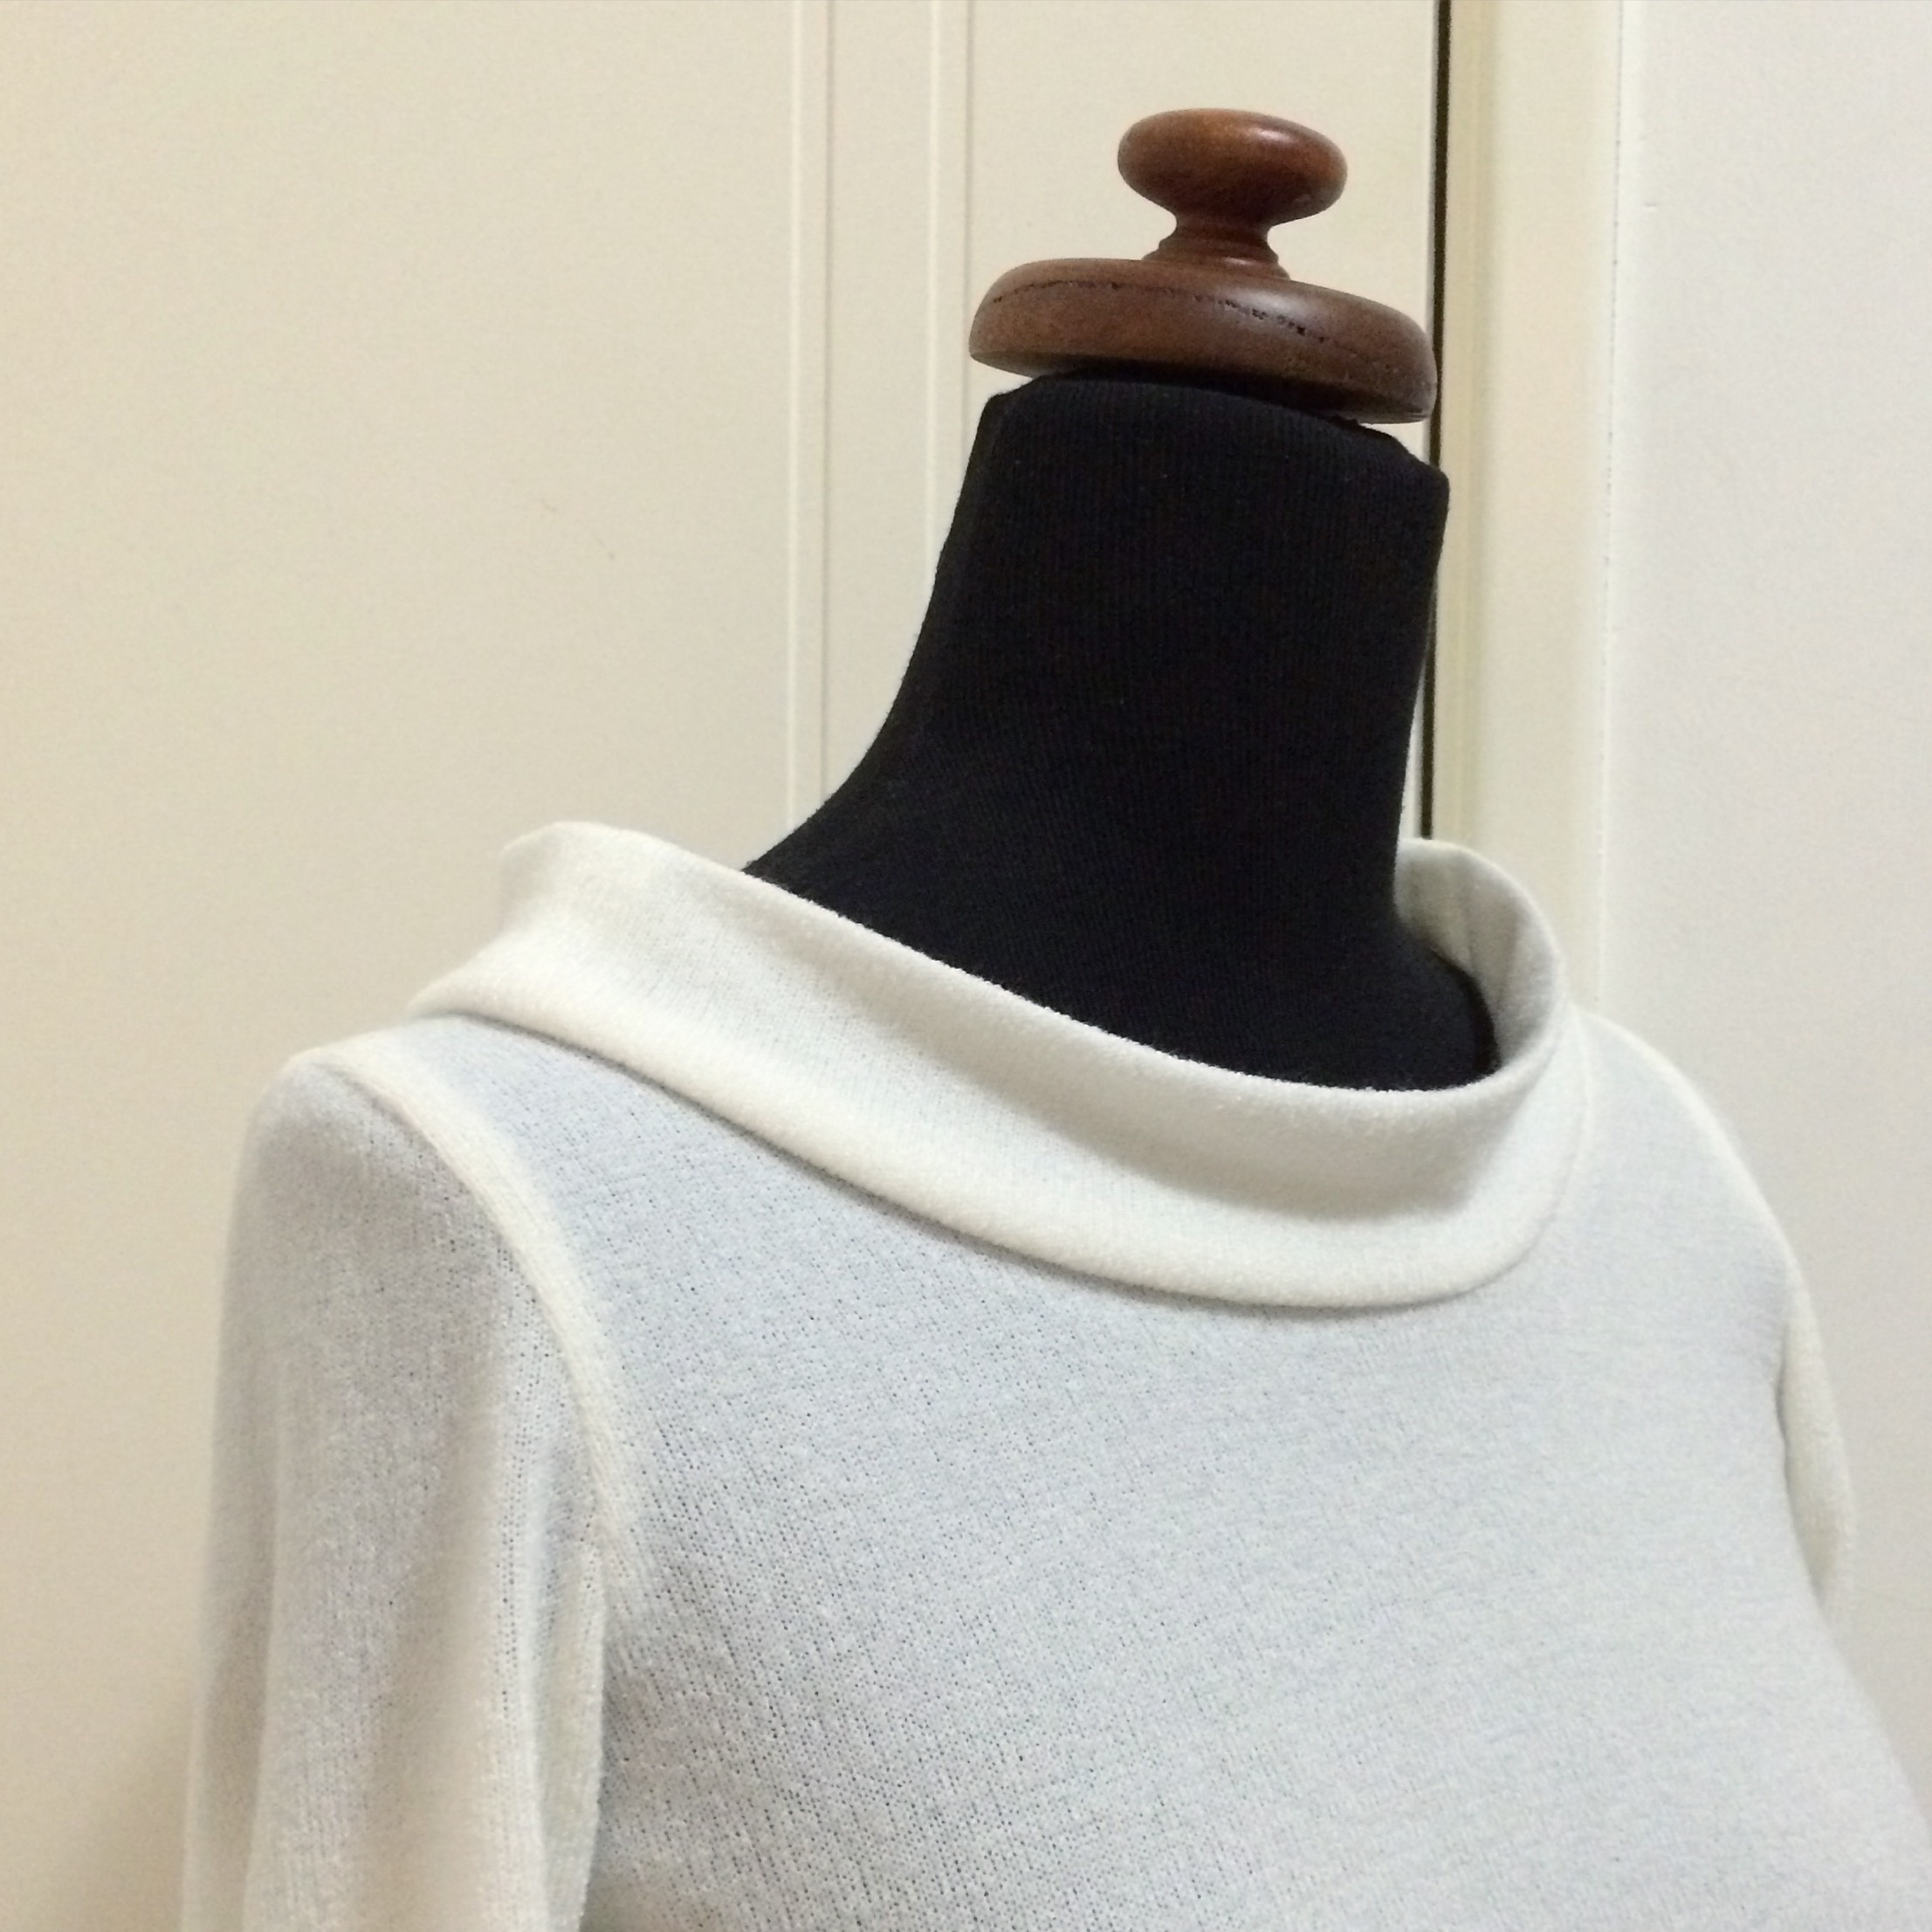 Stand Neck Blouse Designs : Handmade by carolyn page of thoughts on sewing